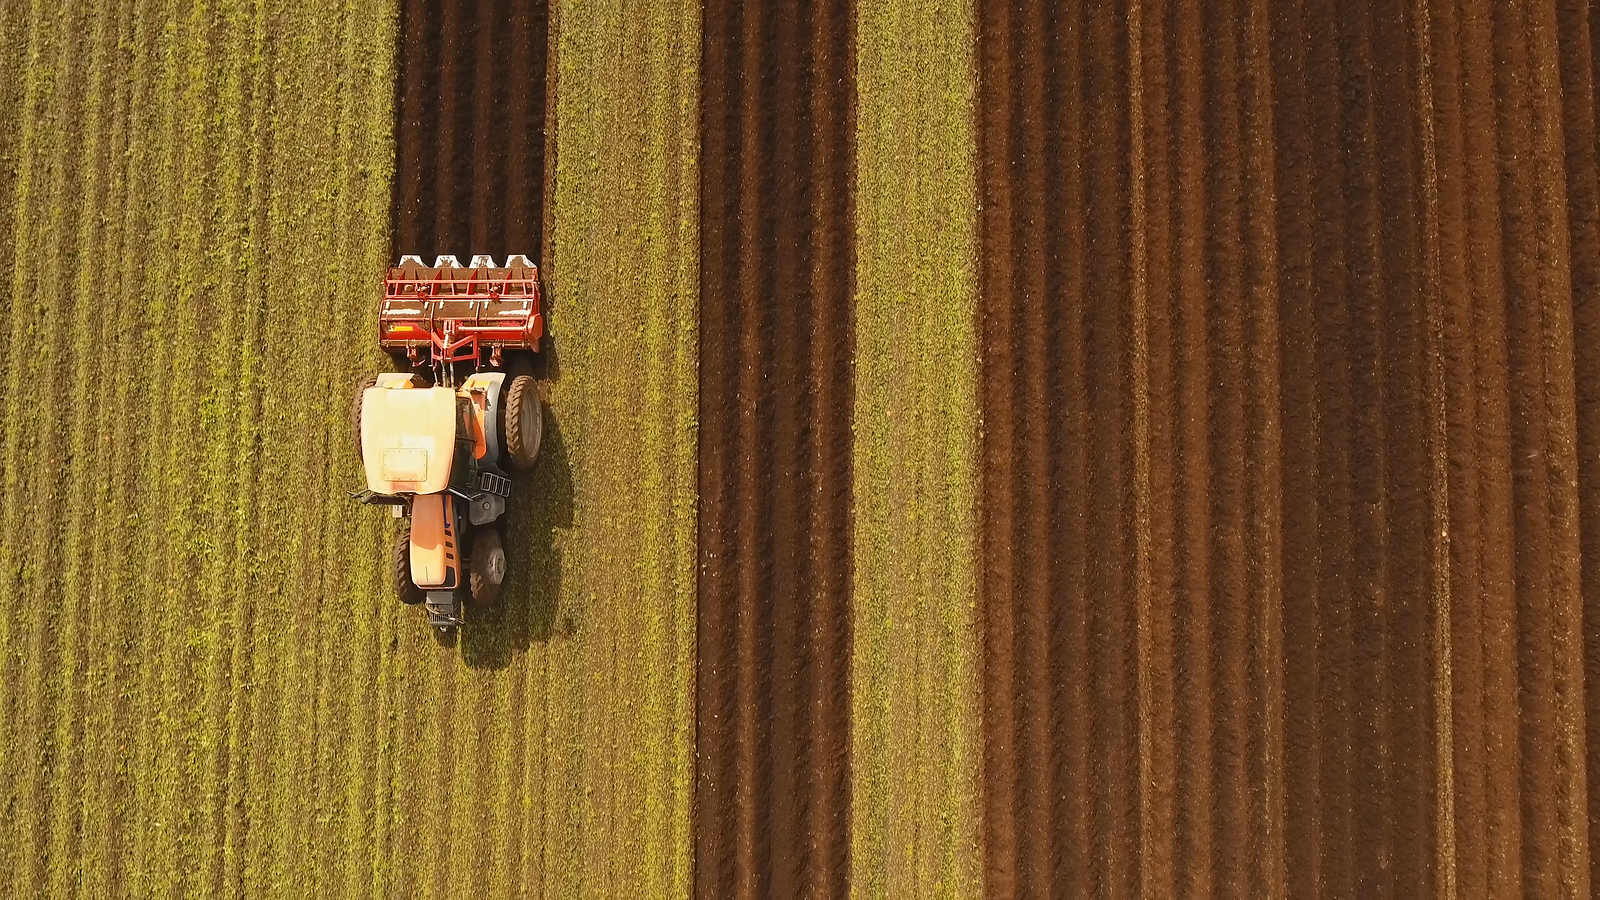 future of agriculture technology